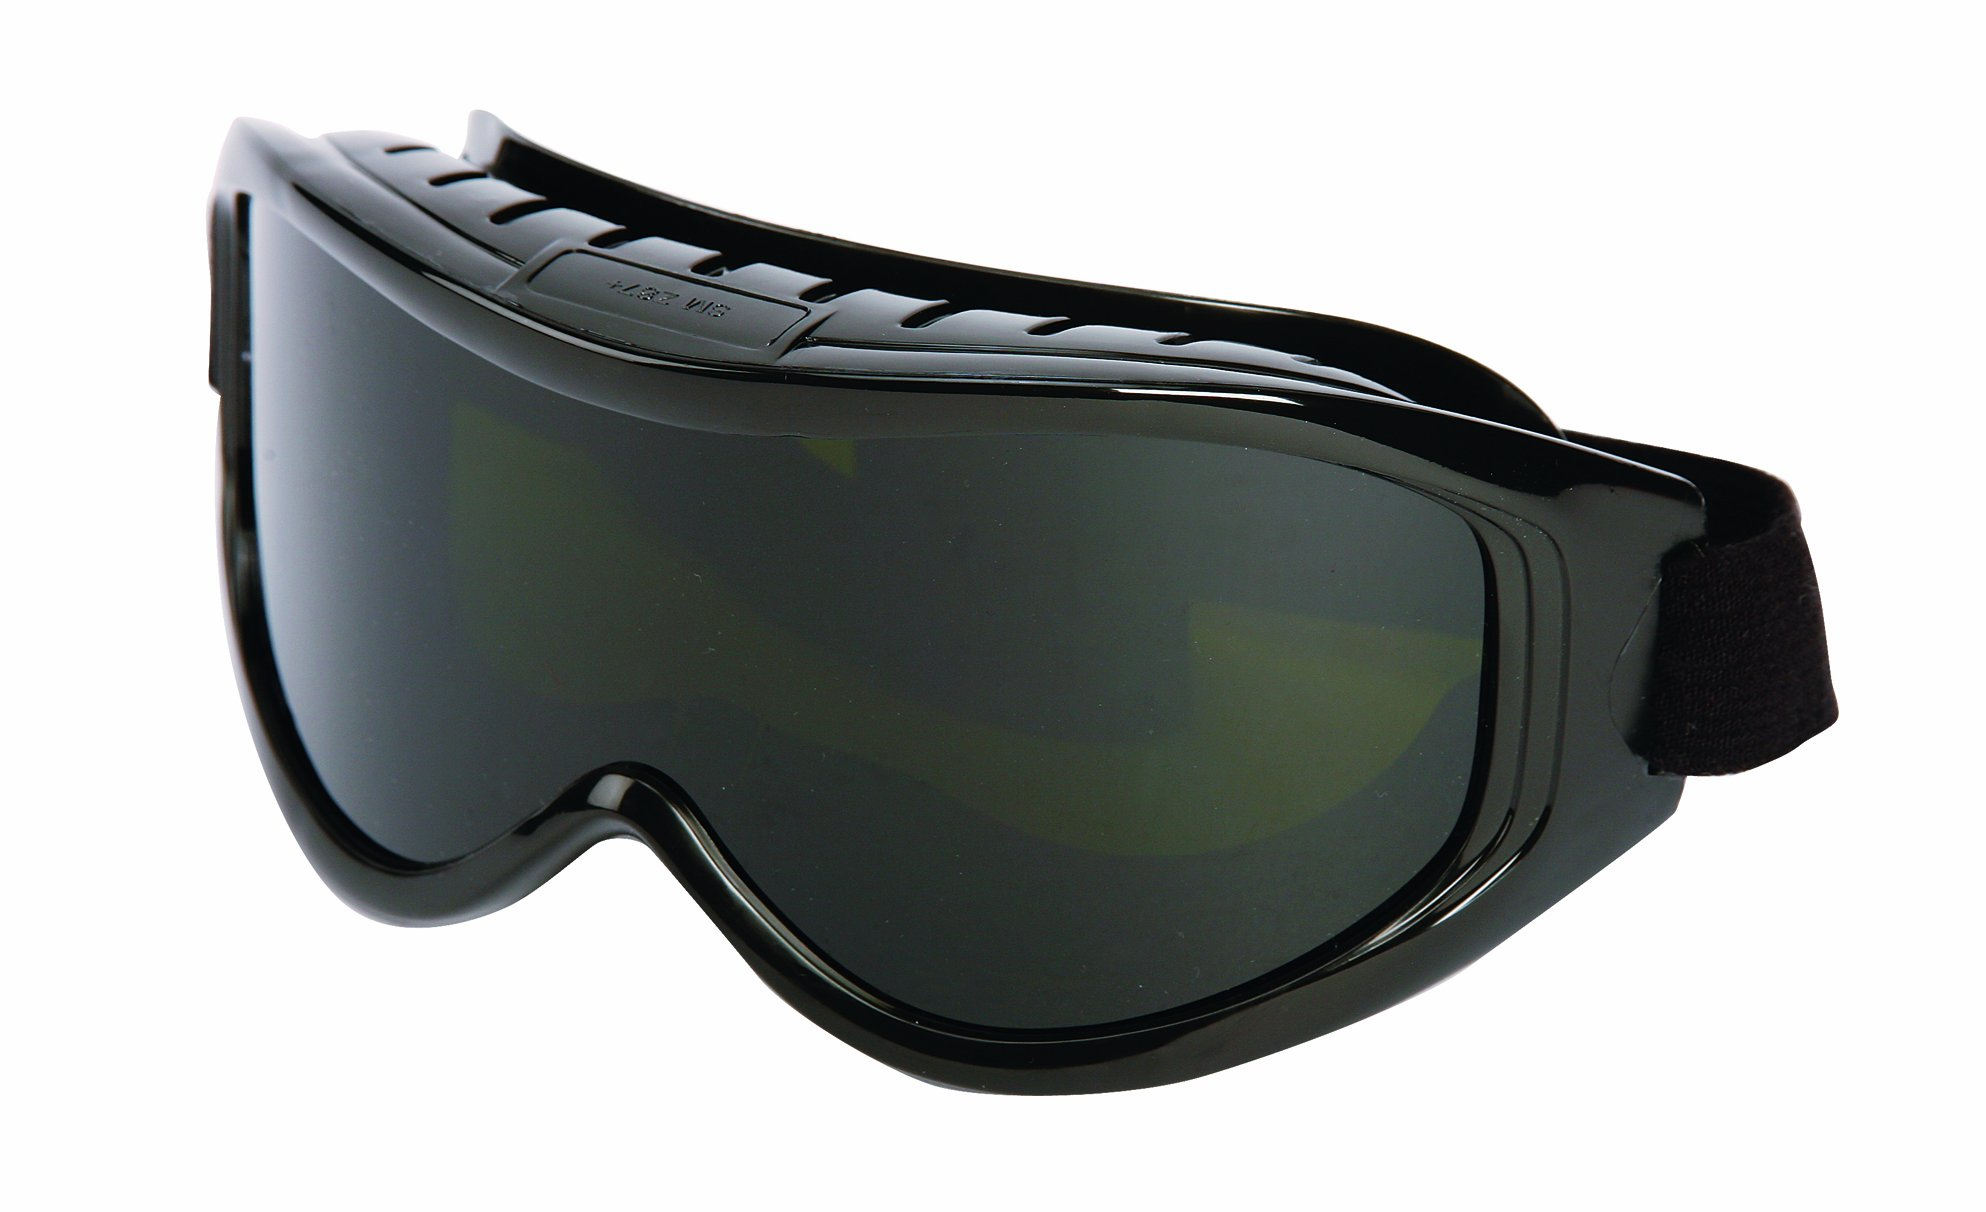 Sellstrom S80210 Odyssey II, High Temperature Cutting, Grinding, Welding, Shade 5 IR / UV Green Lens, Black Indirect Vent Goggle Body ( OTG ), Packaged in a Plastic Polybag by Sellstrom